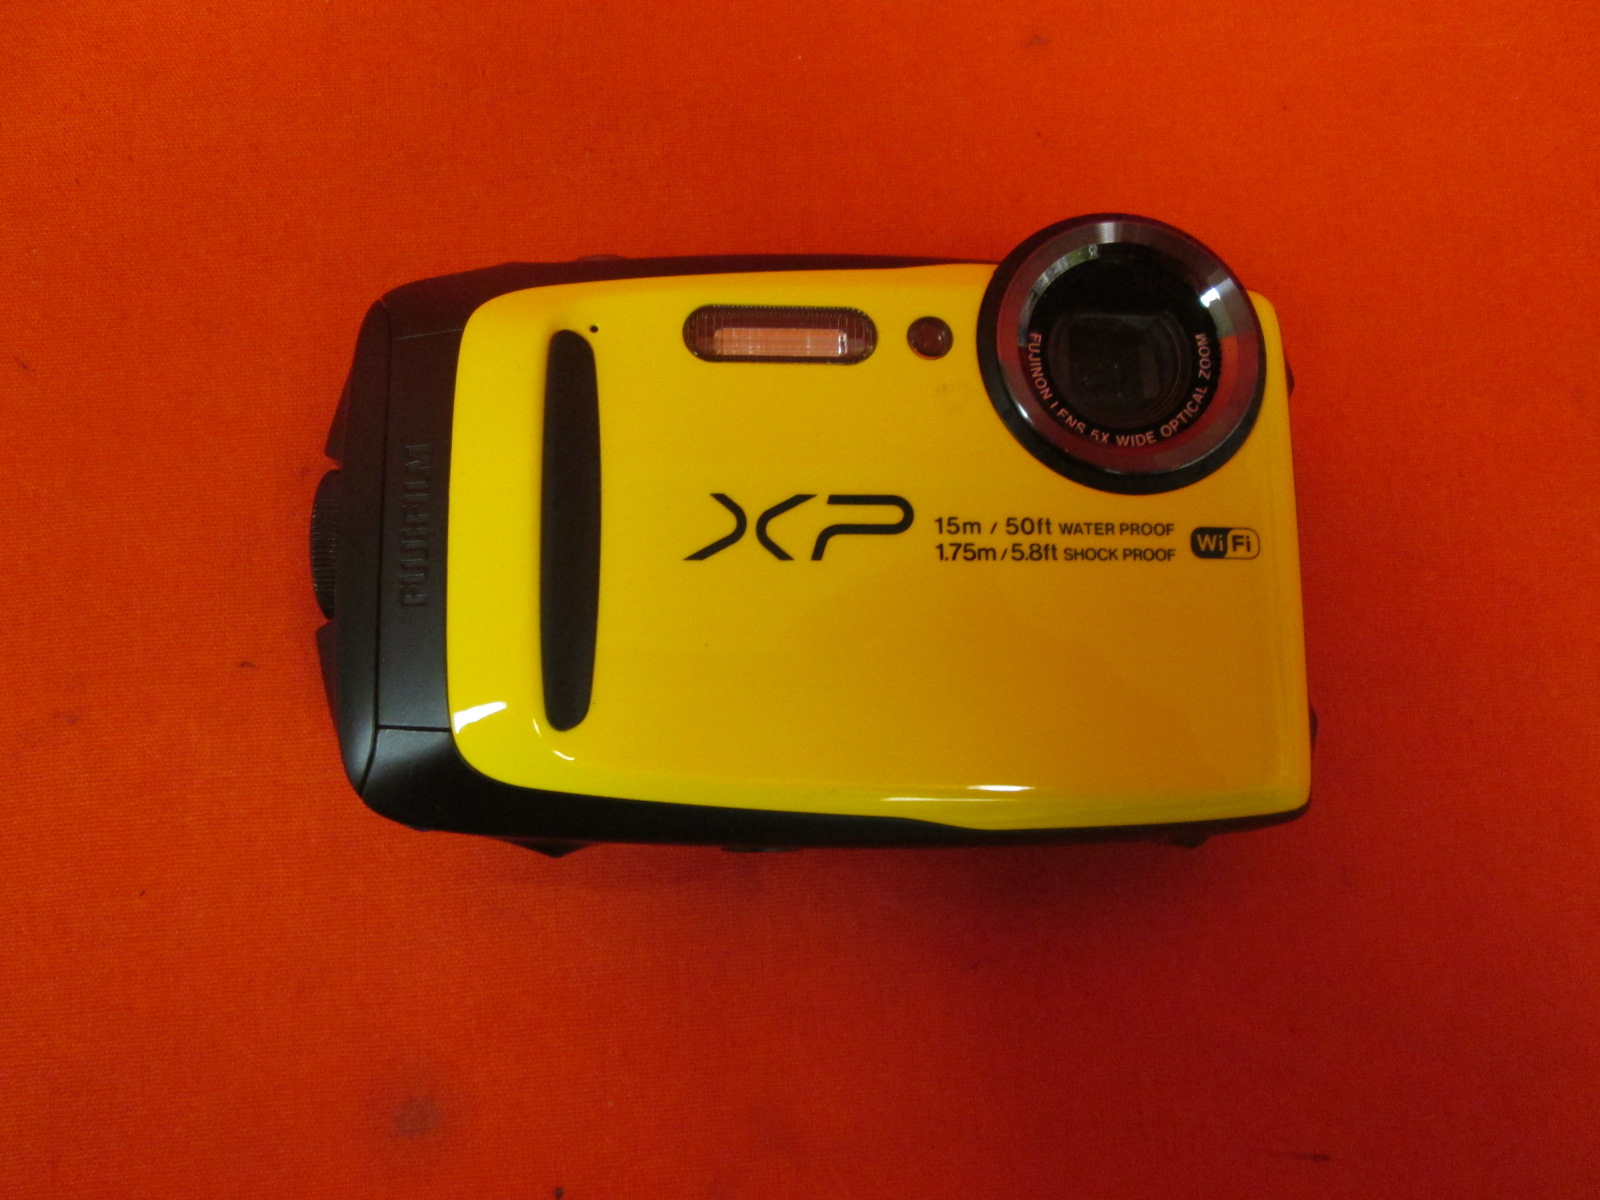 FujiFilm FinePix XP80 Waterproof Digital Camera With 2.7-inch LCD